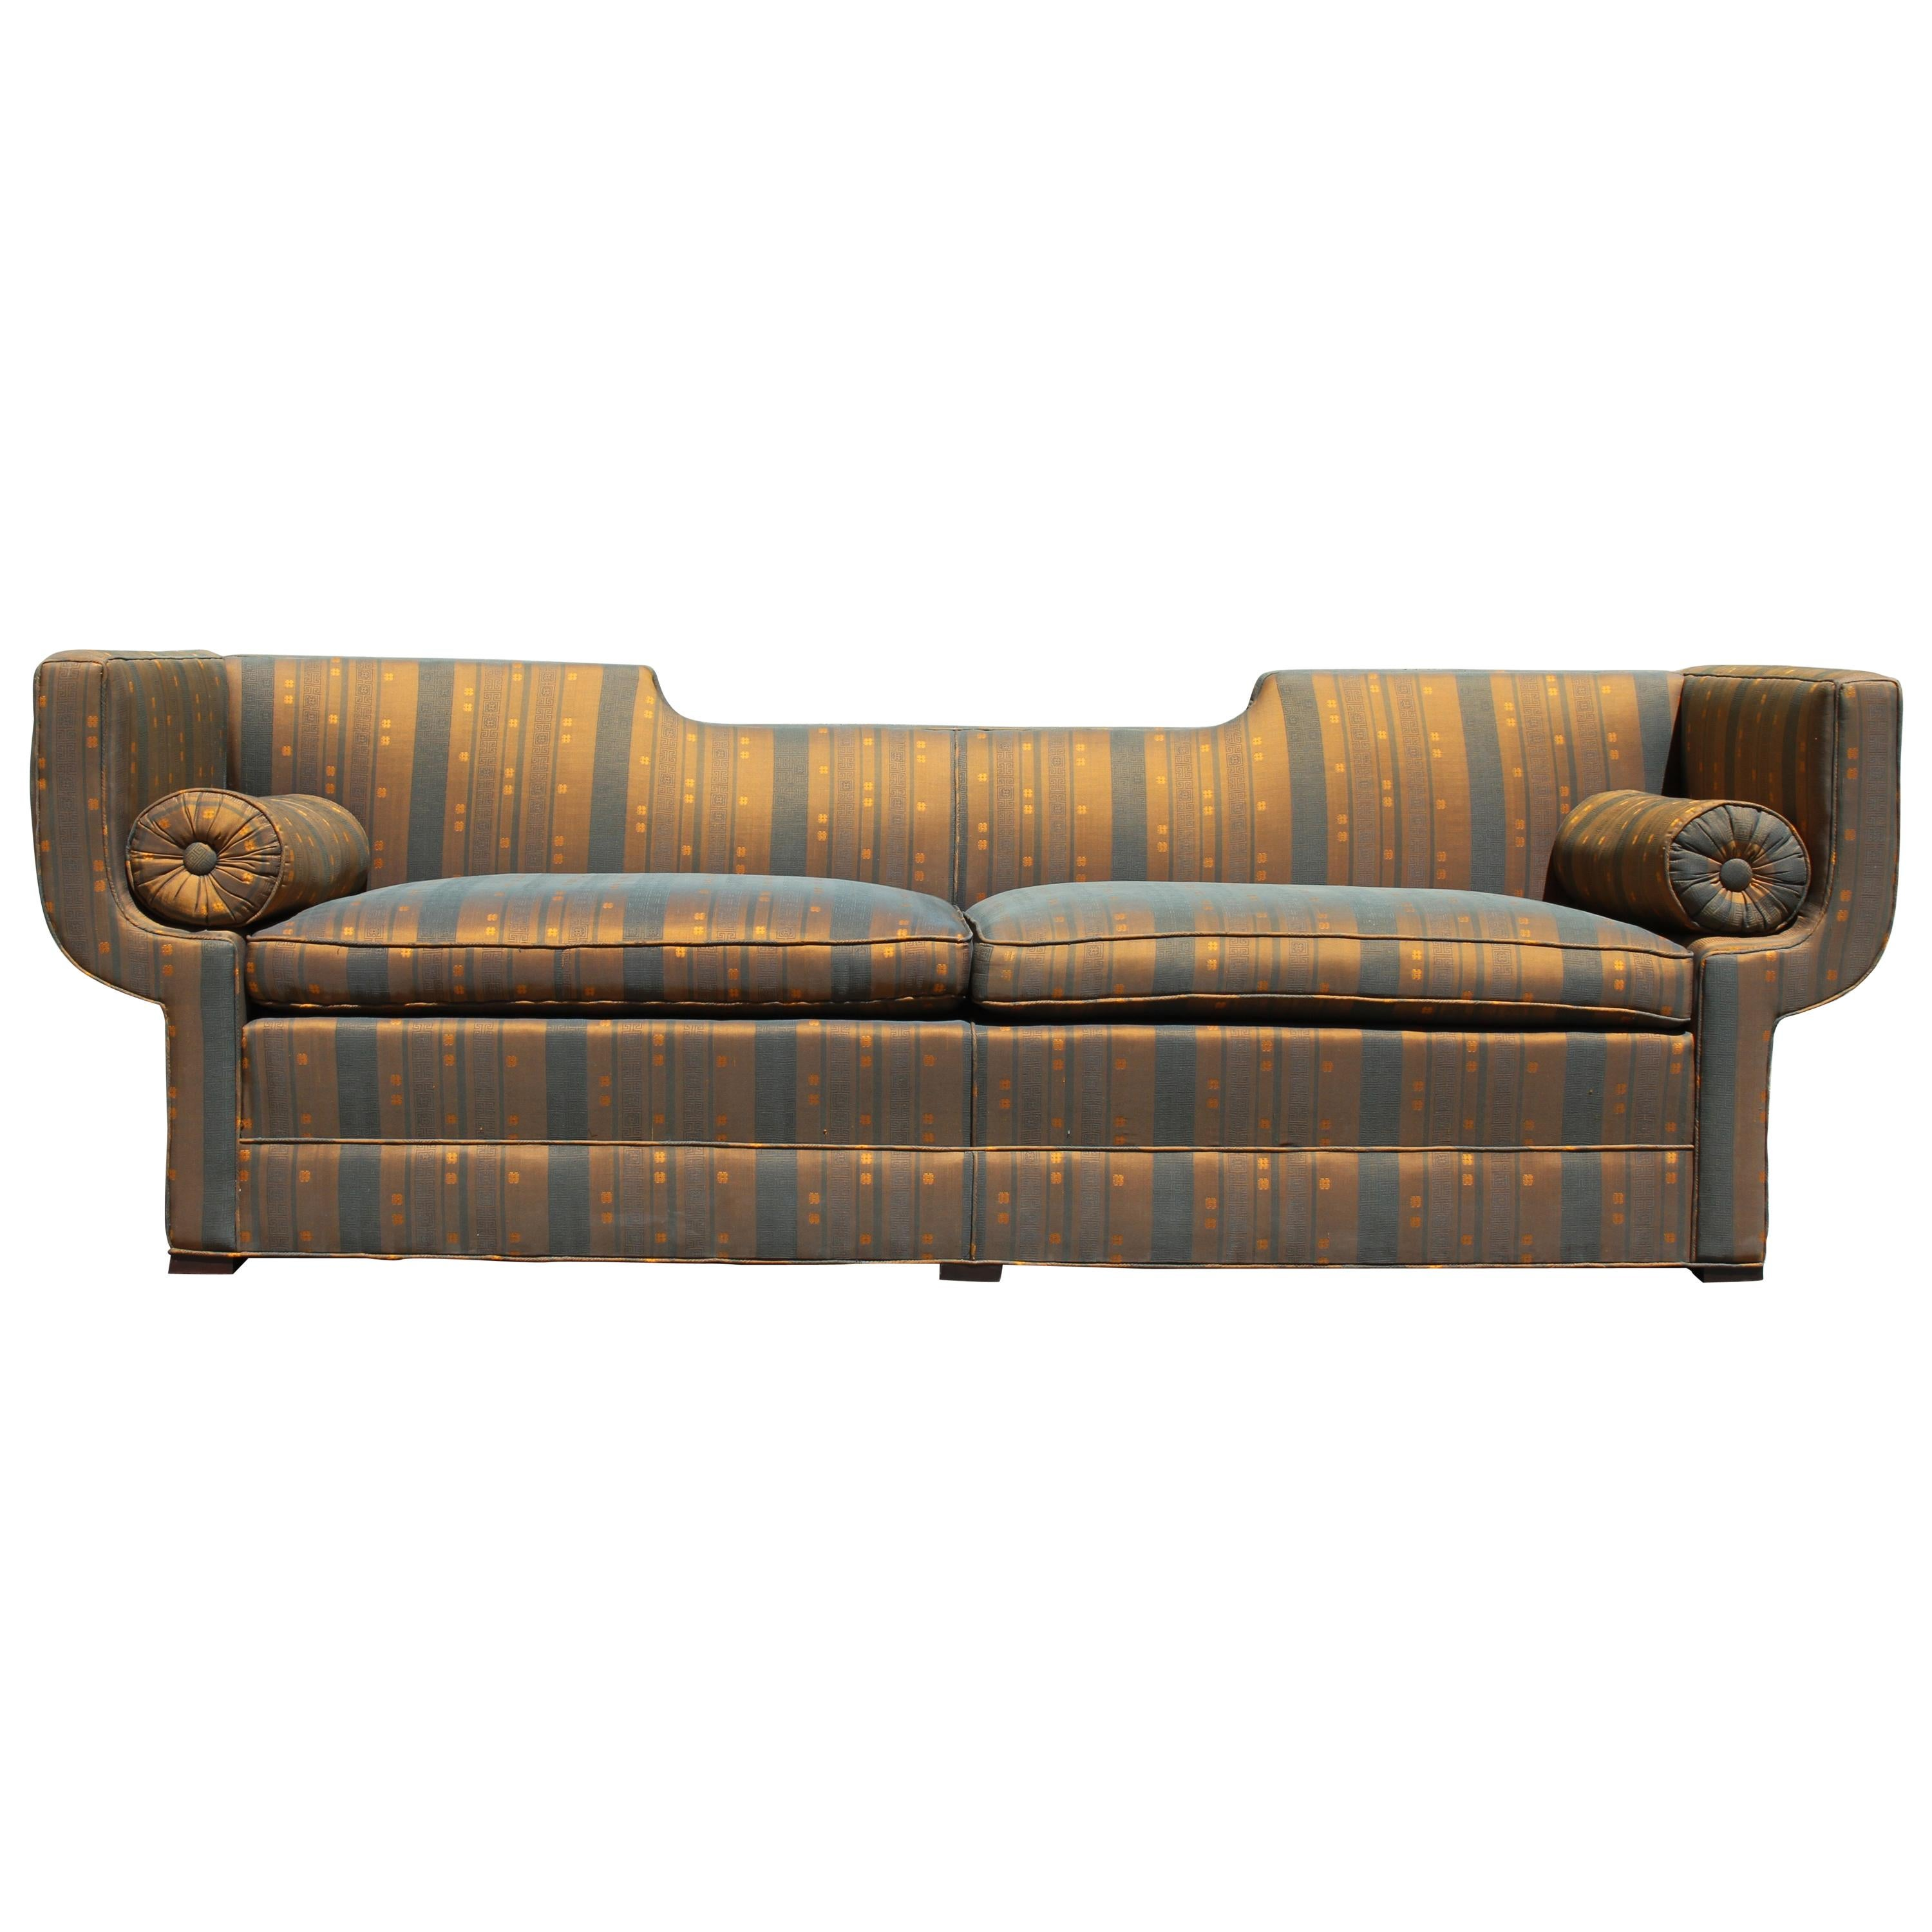 1960s sofas 1233 for sale at 1stdibs